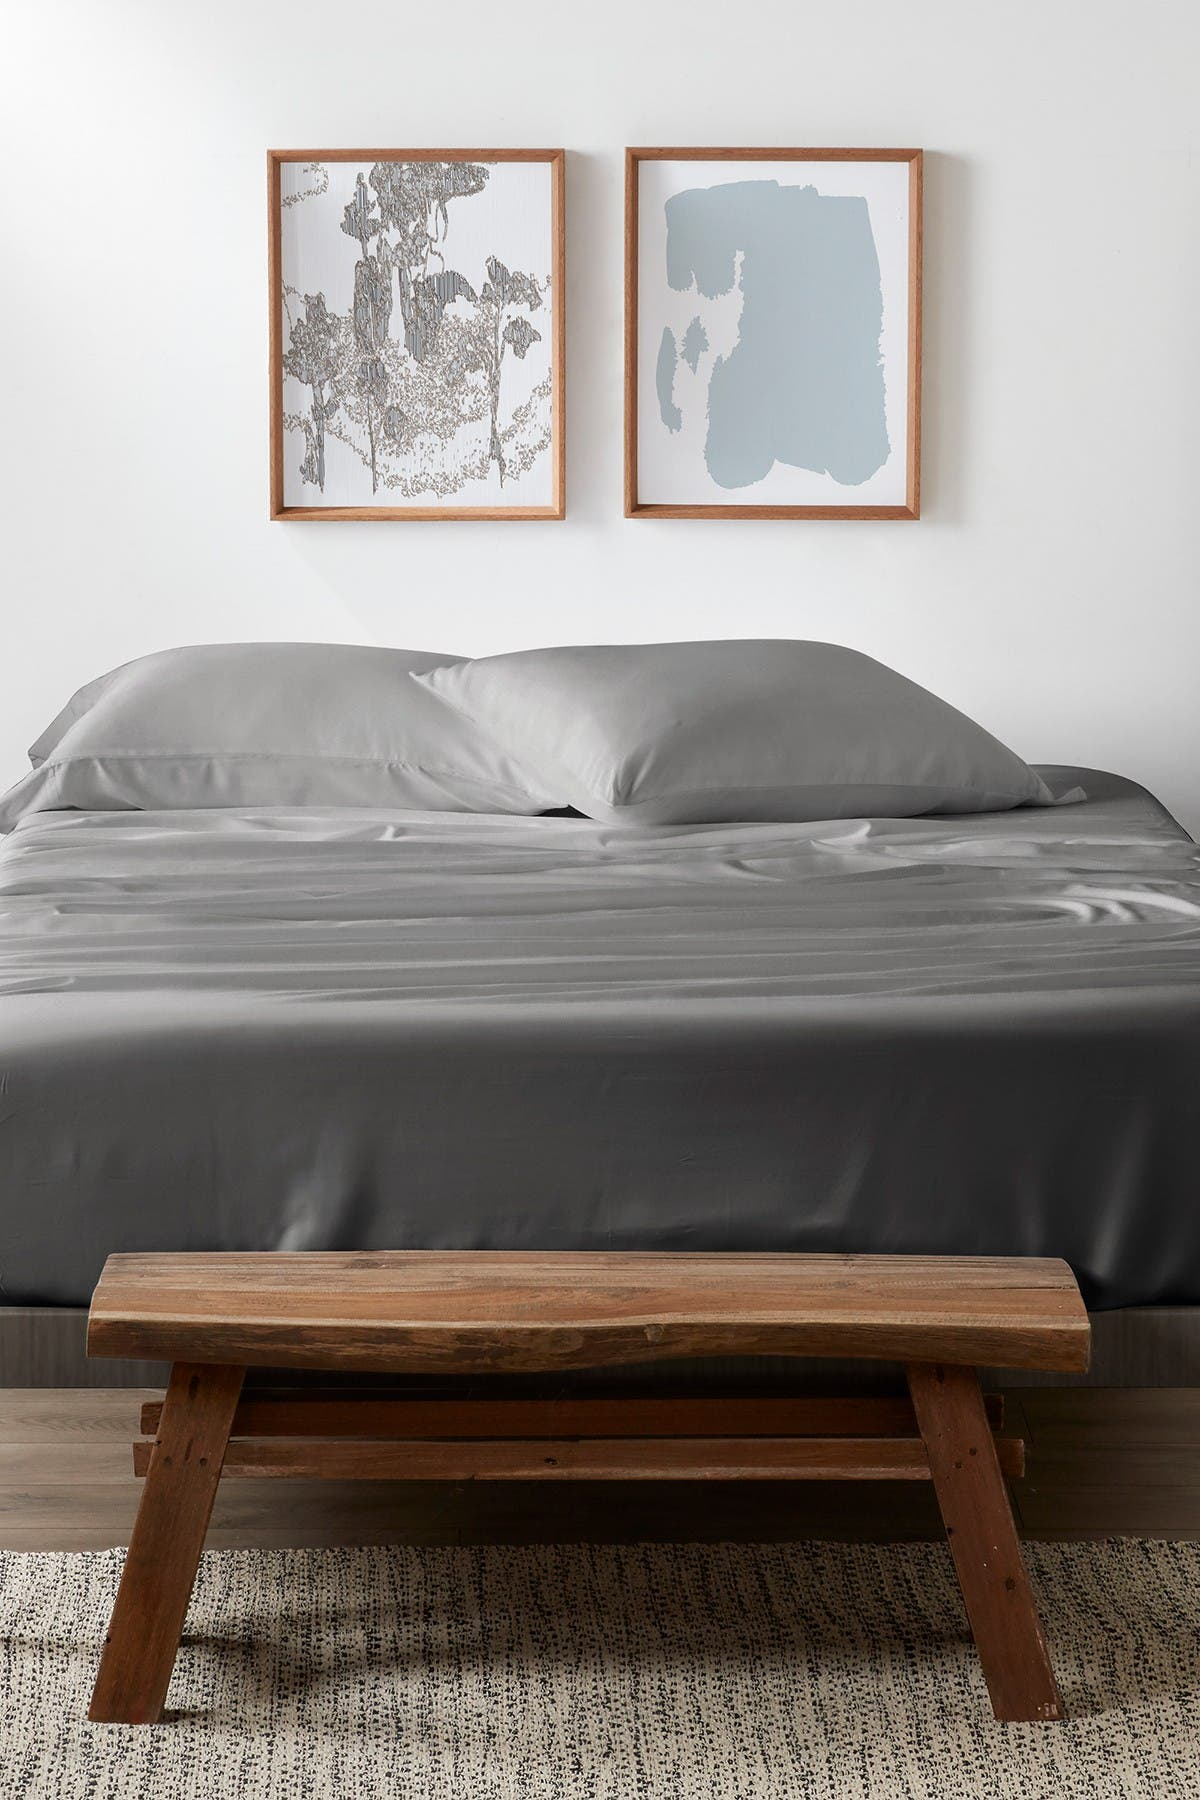 Image of IENJOY HOME Home Collection Premium 4-Piece Luxury King Bed Sheet Set - Gray